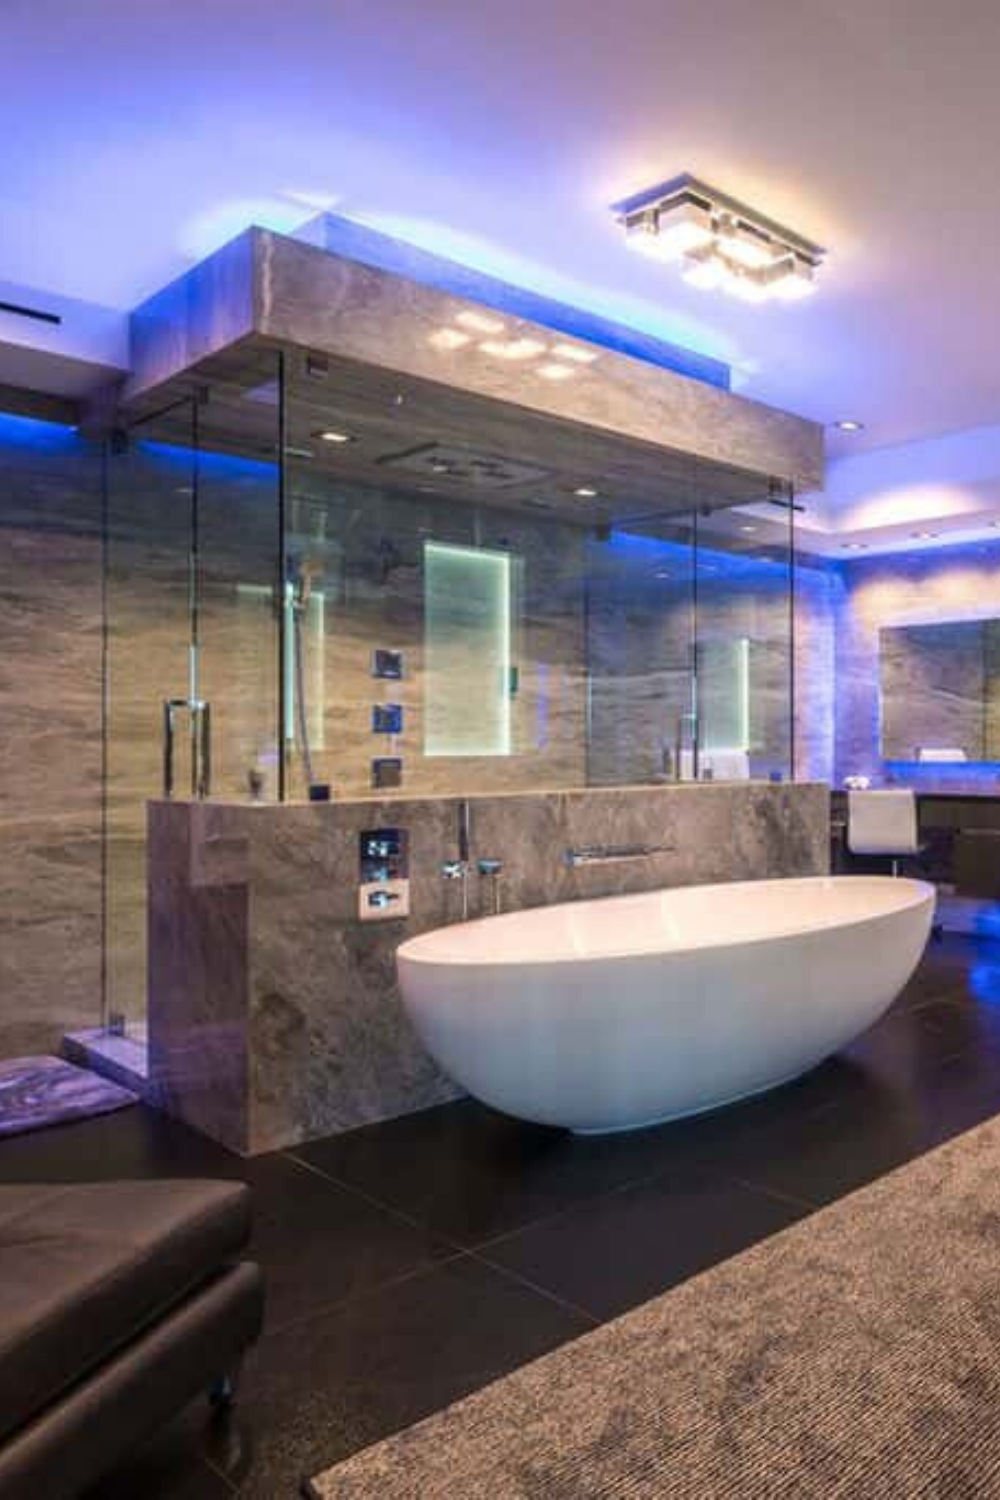 Photo of Luxury Master Bathroom Interior Design Inside an Awesome 31,000 Sq. Ft. Los Angeles Mansion